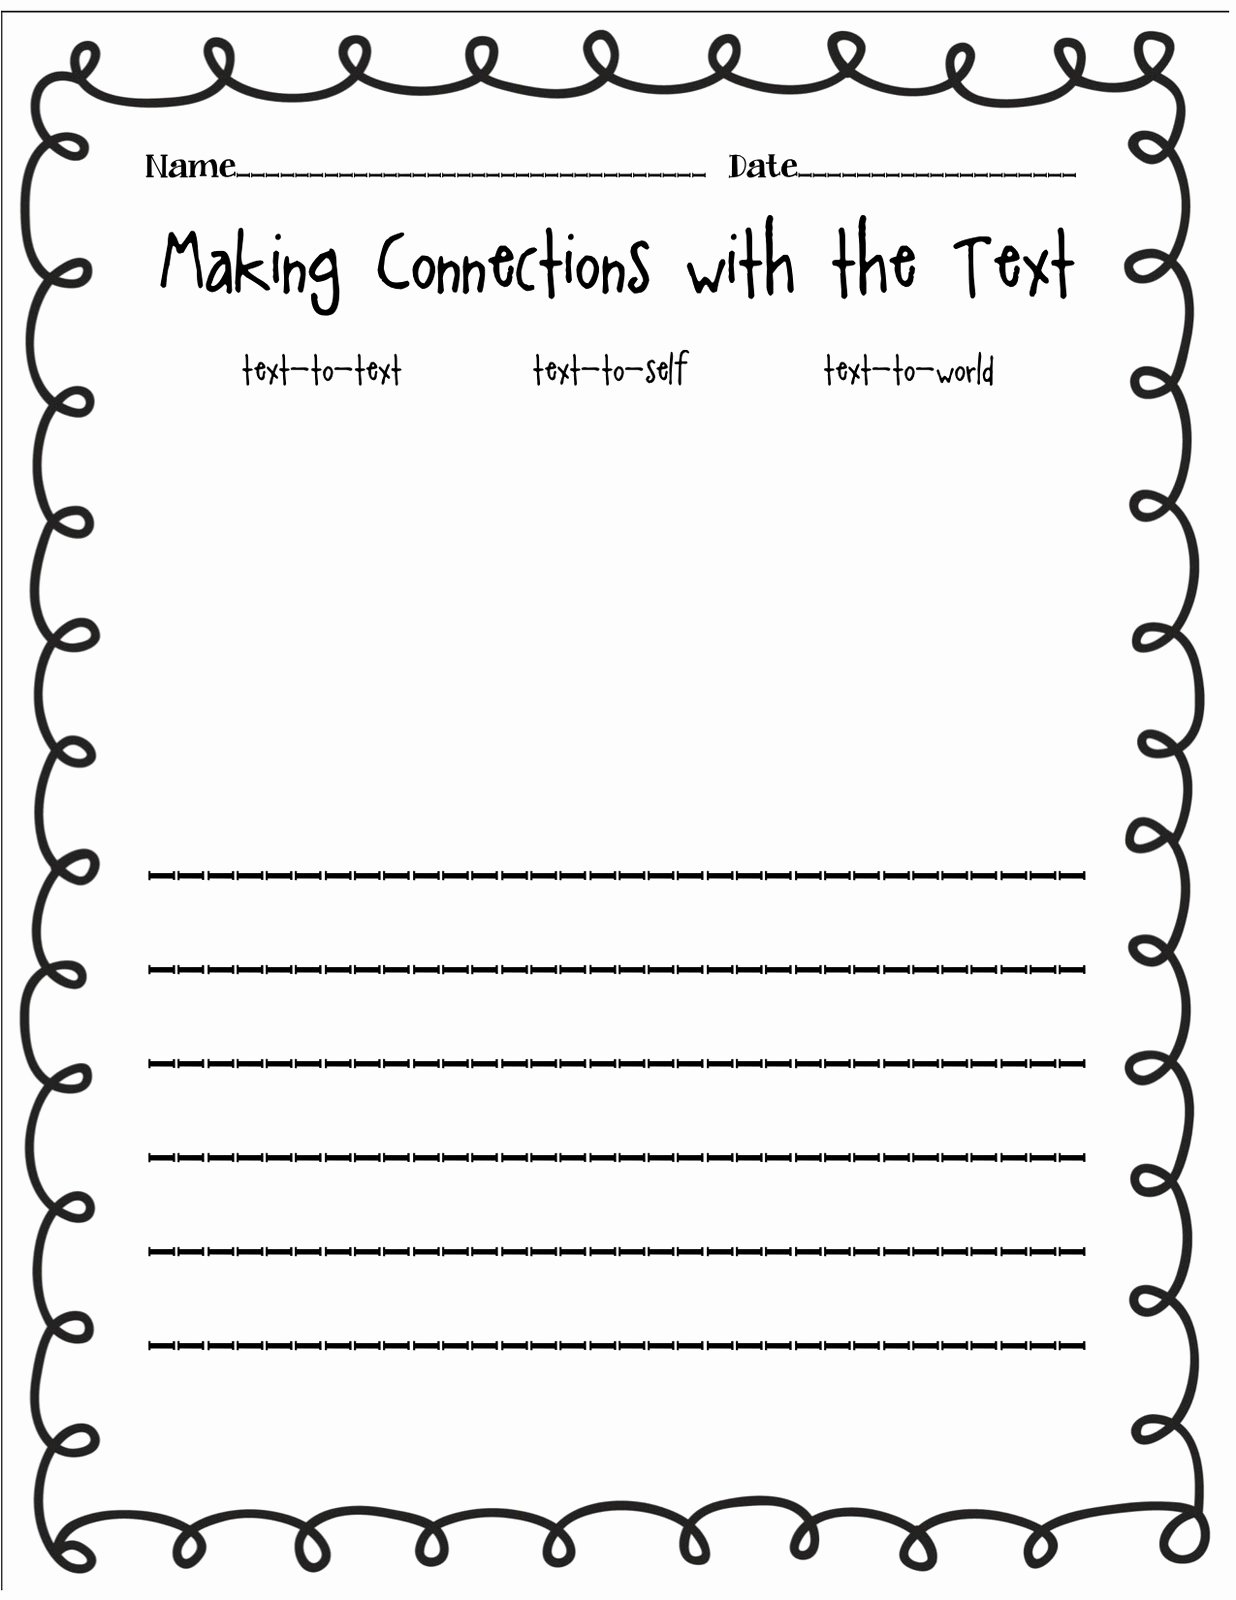 Text to Text Connections Worksheet Elegant the Wizard Of Boz January 2012